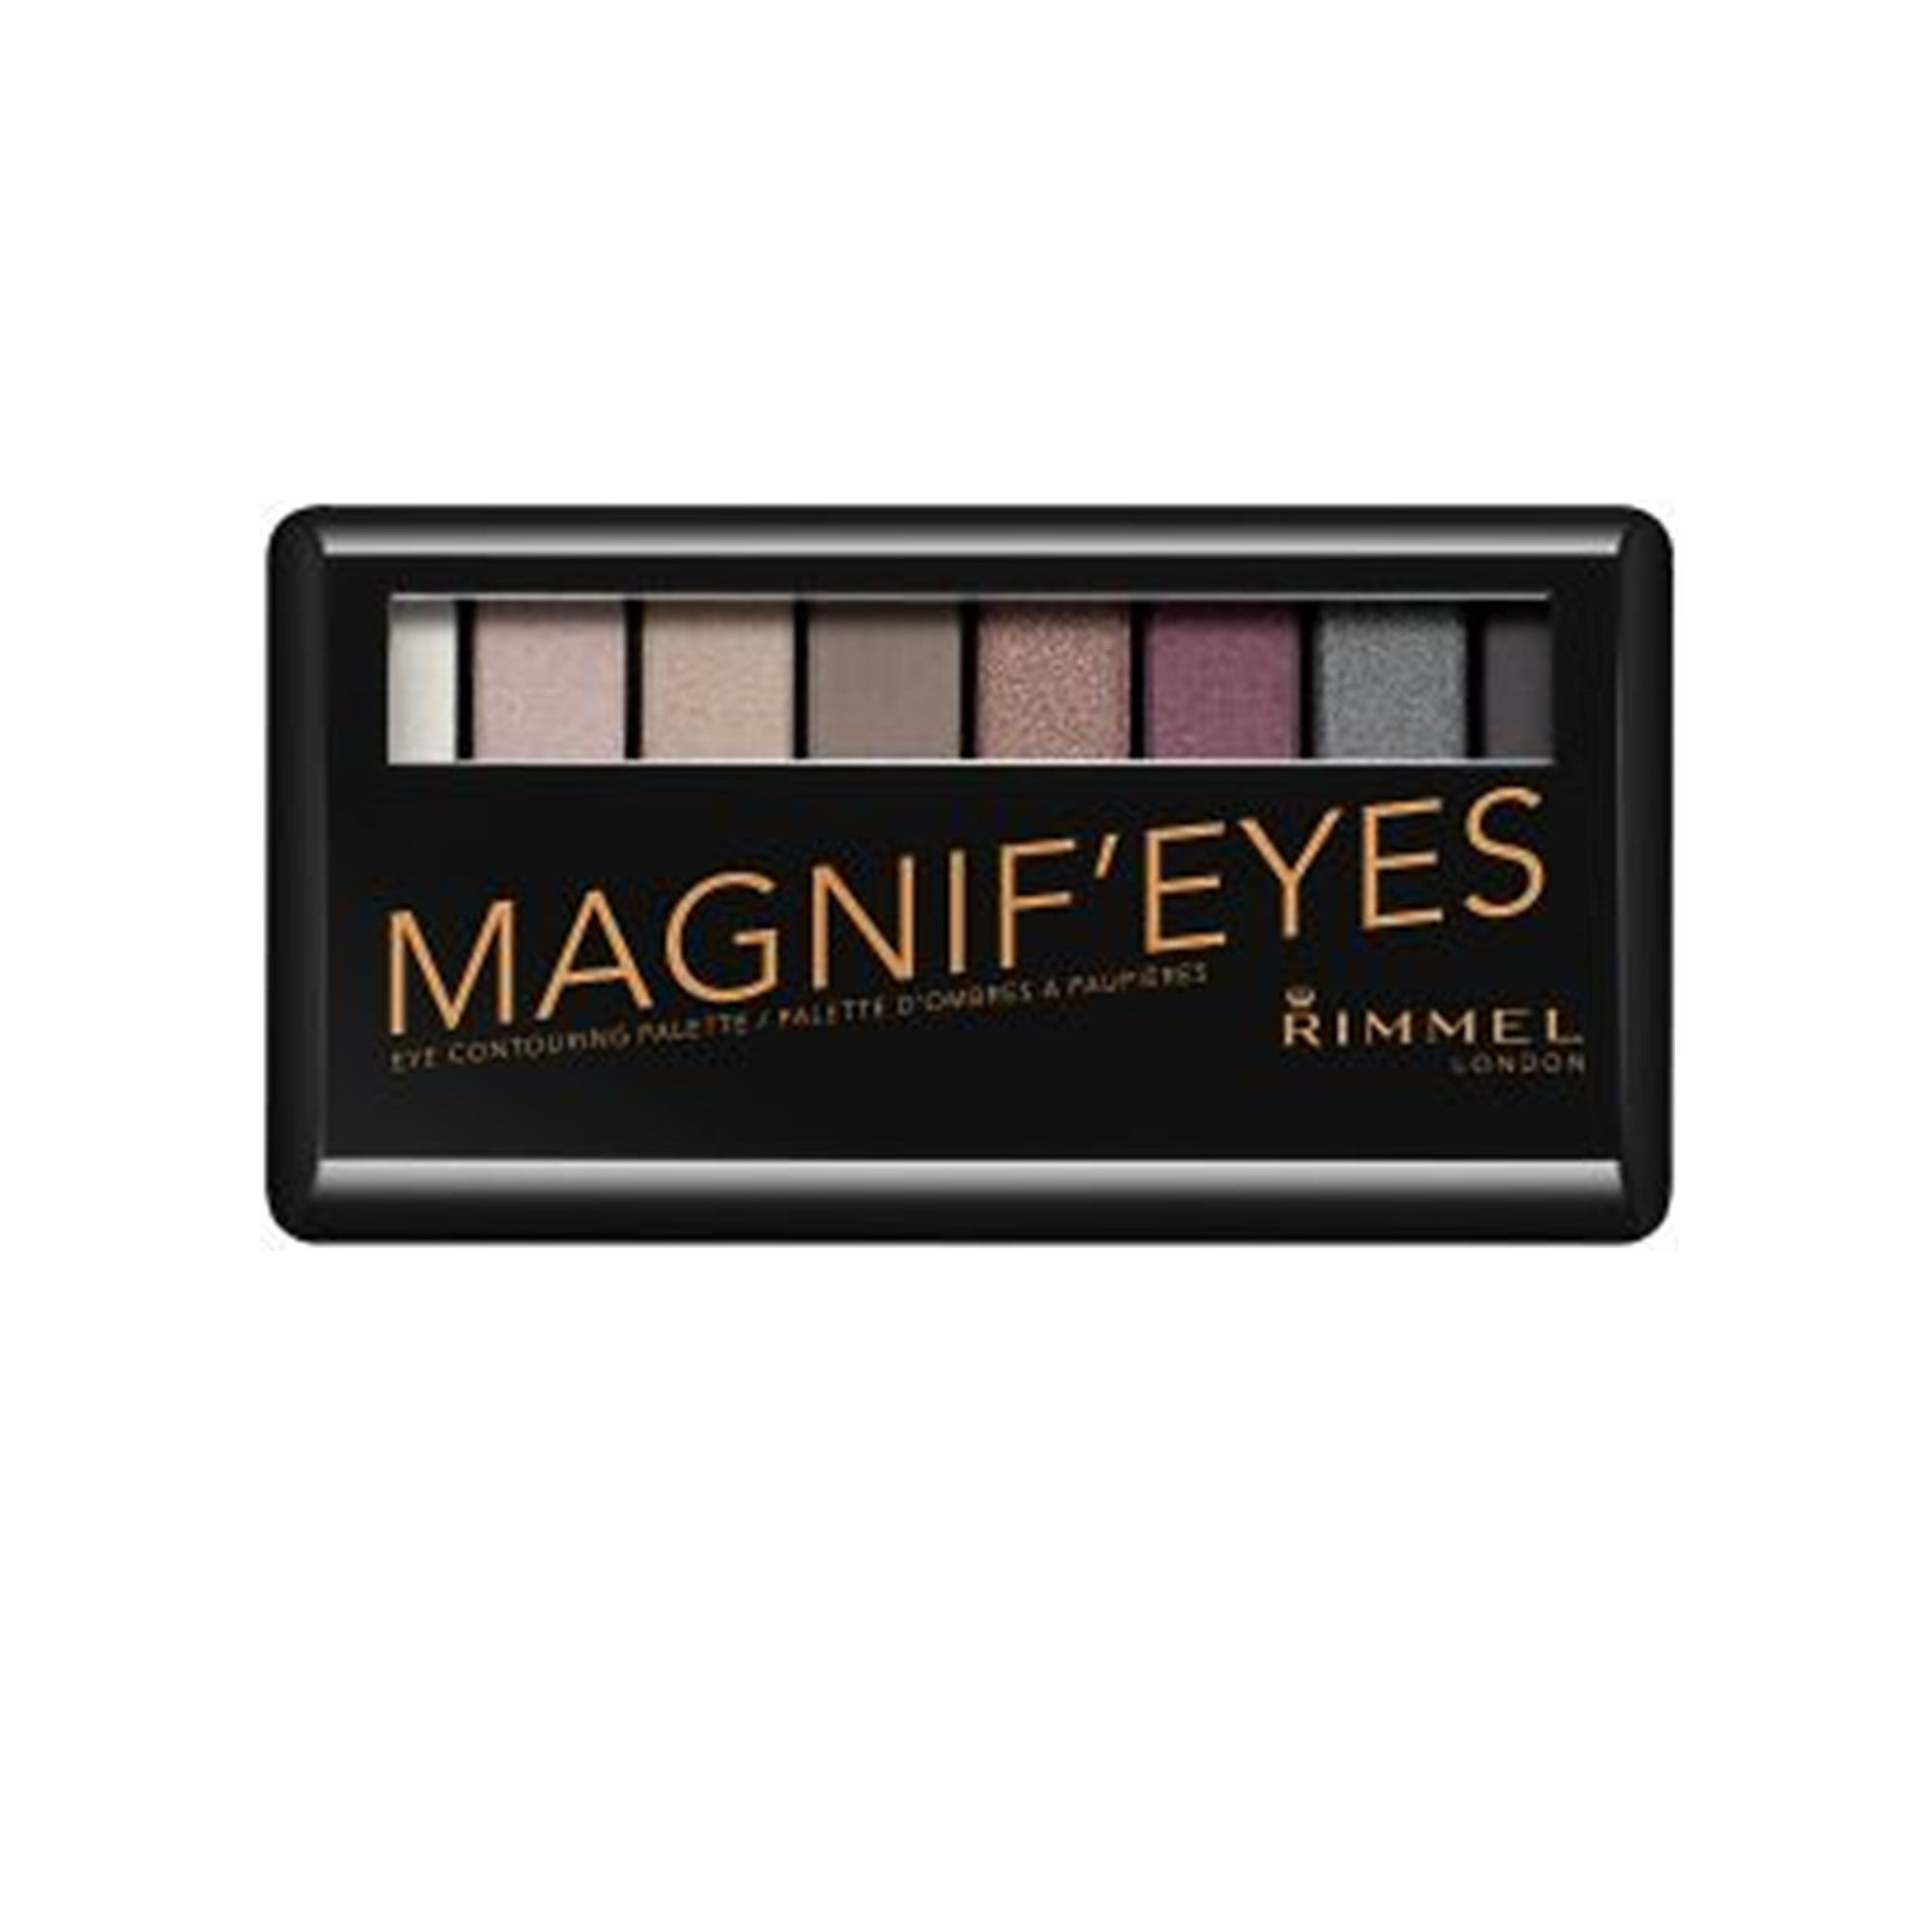 Rimmel London Magnif'eyes Eye Palette 003 Glam